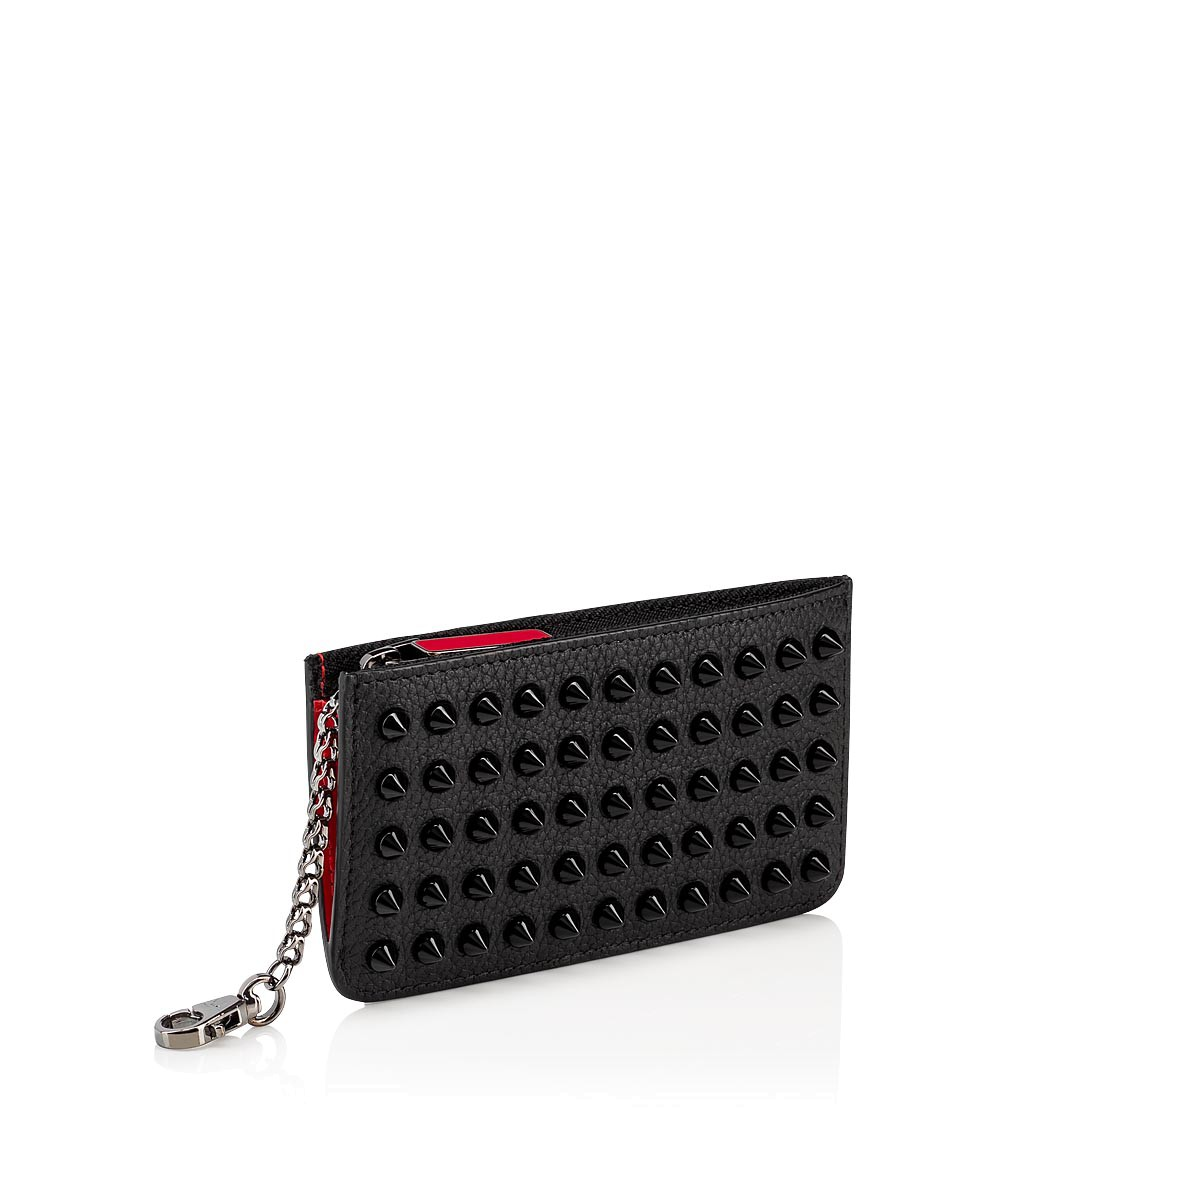 Small Leather Goods - M Credilou - Christian Louboutin